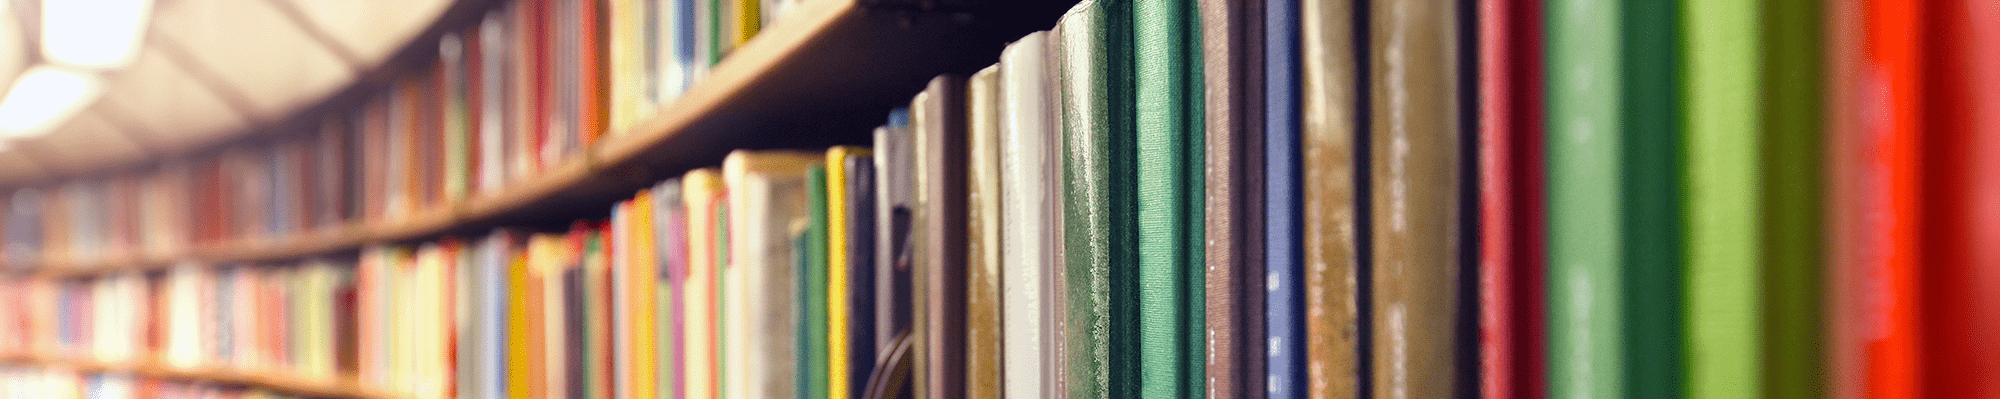 Shelves of colorful books from inside a library